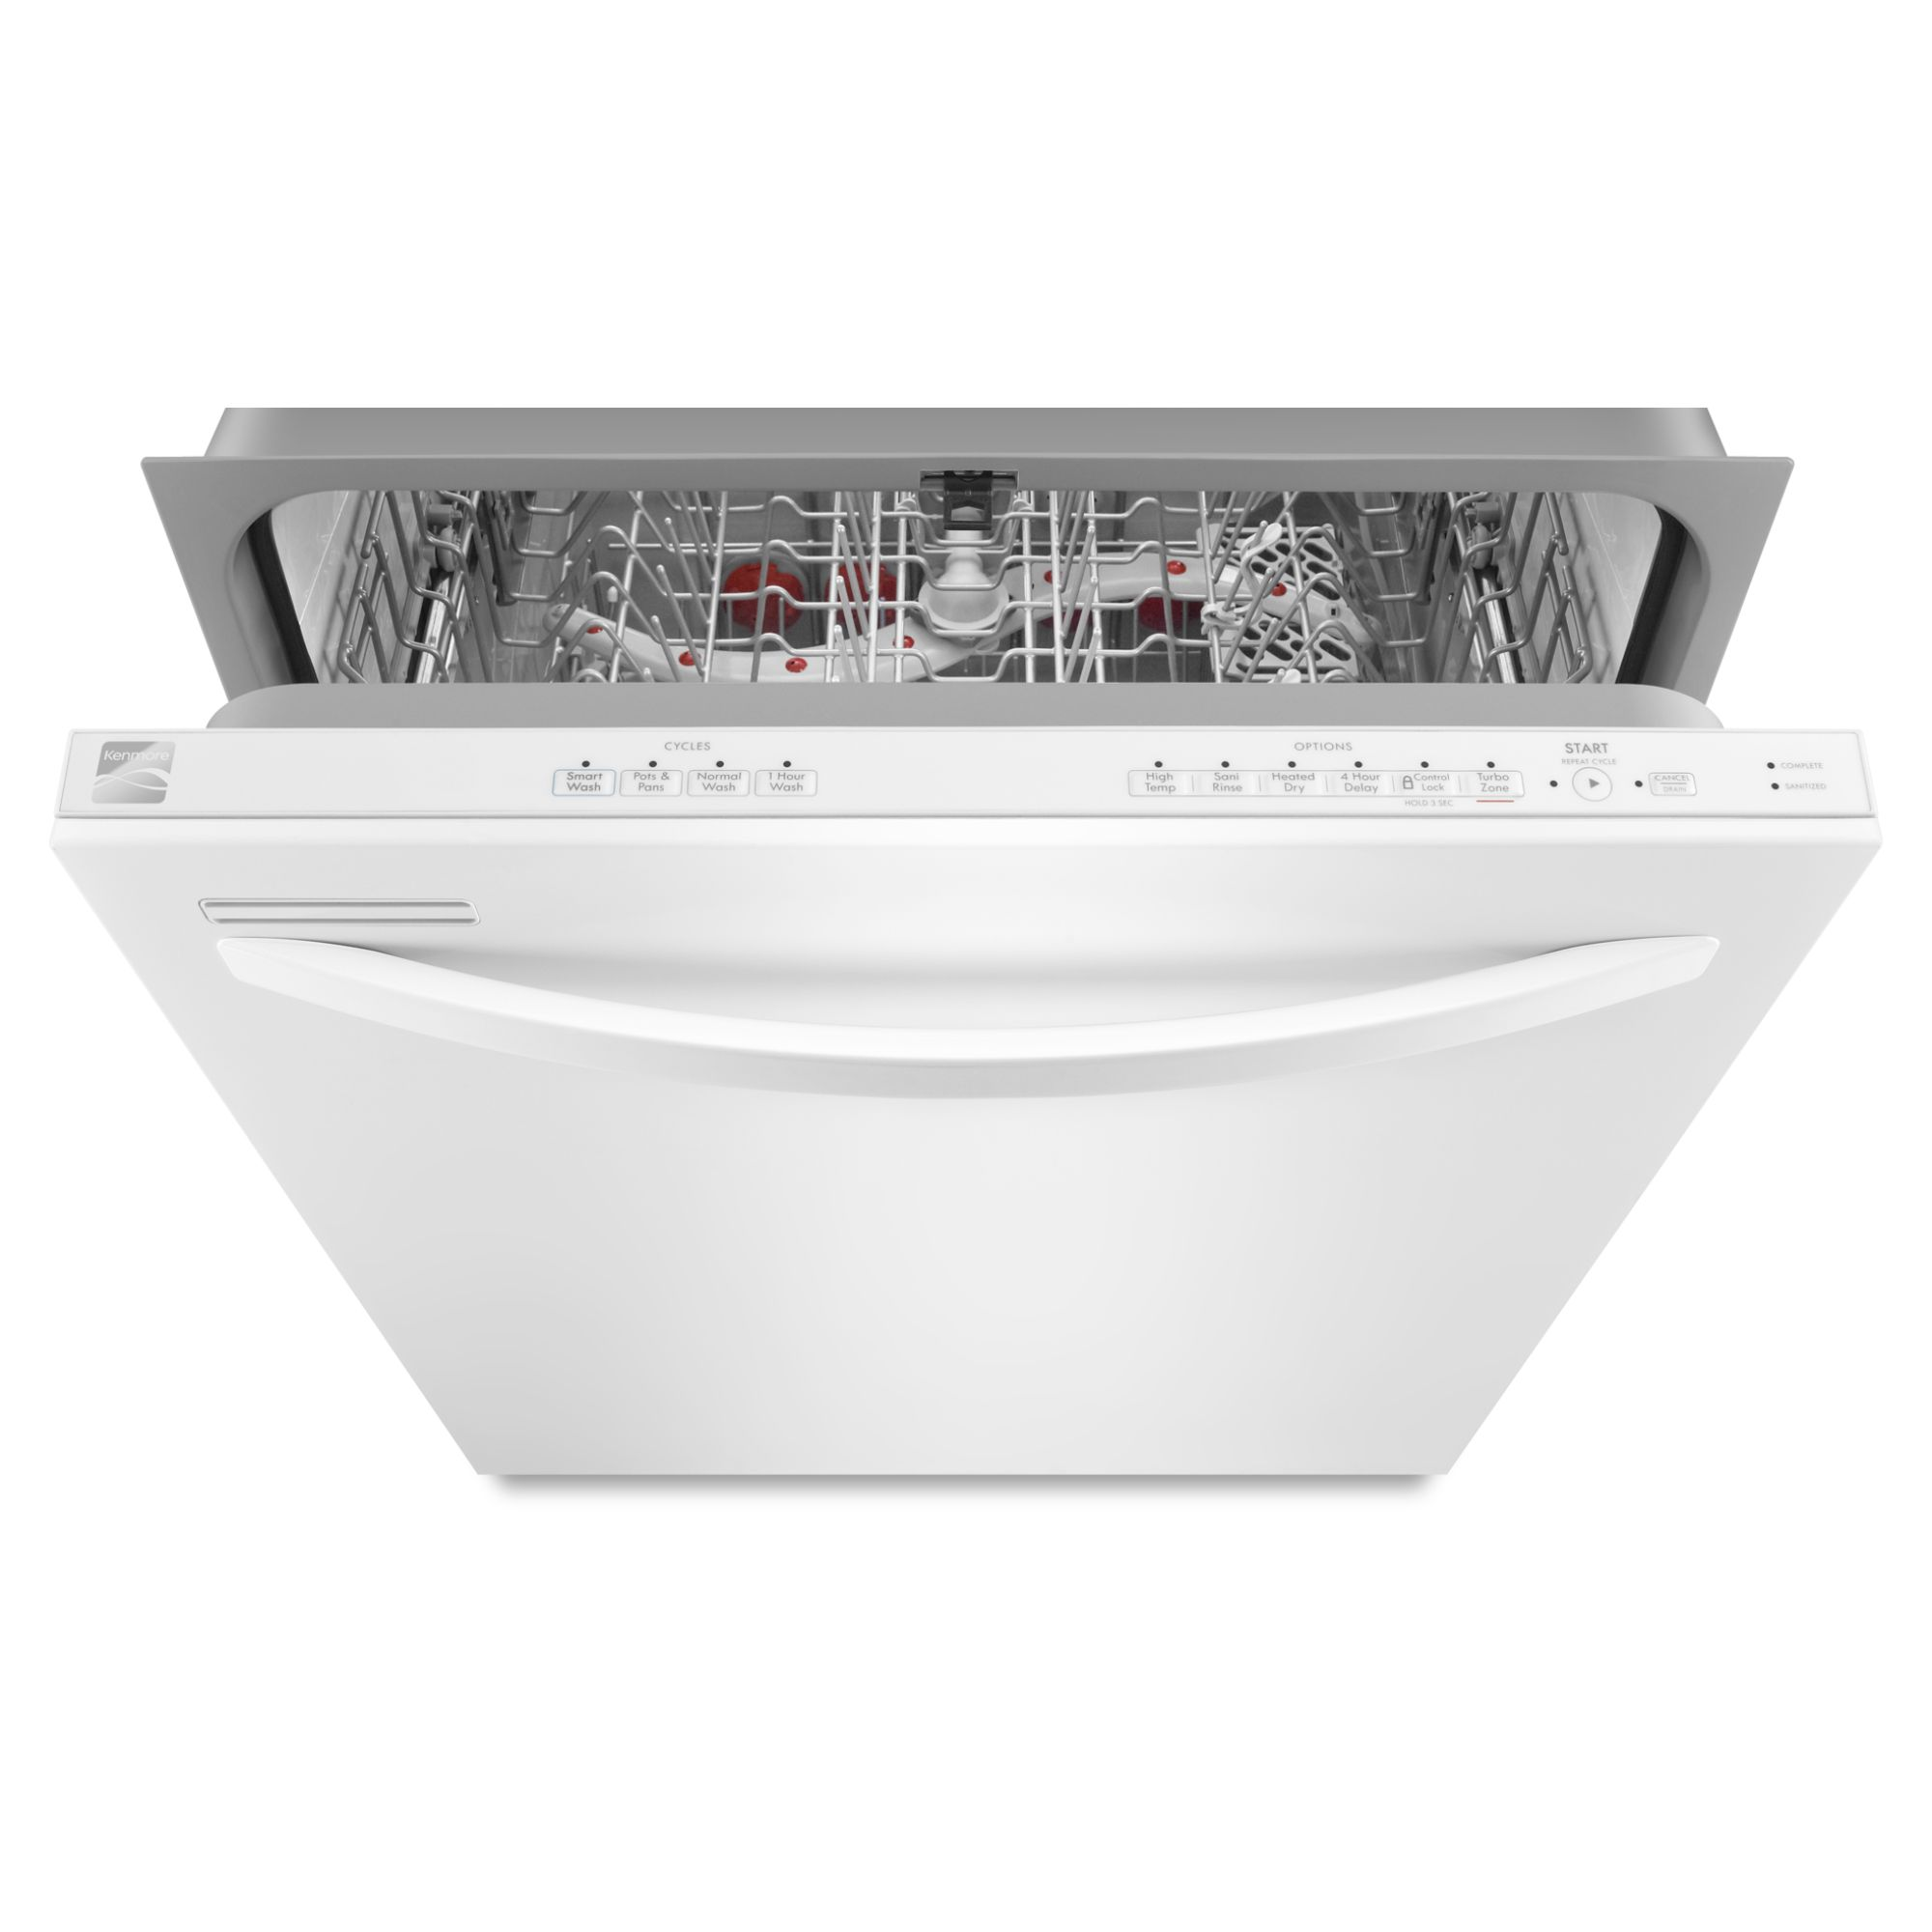 "Kenmore 24"" Built-In Dishwasher - White"